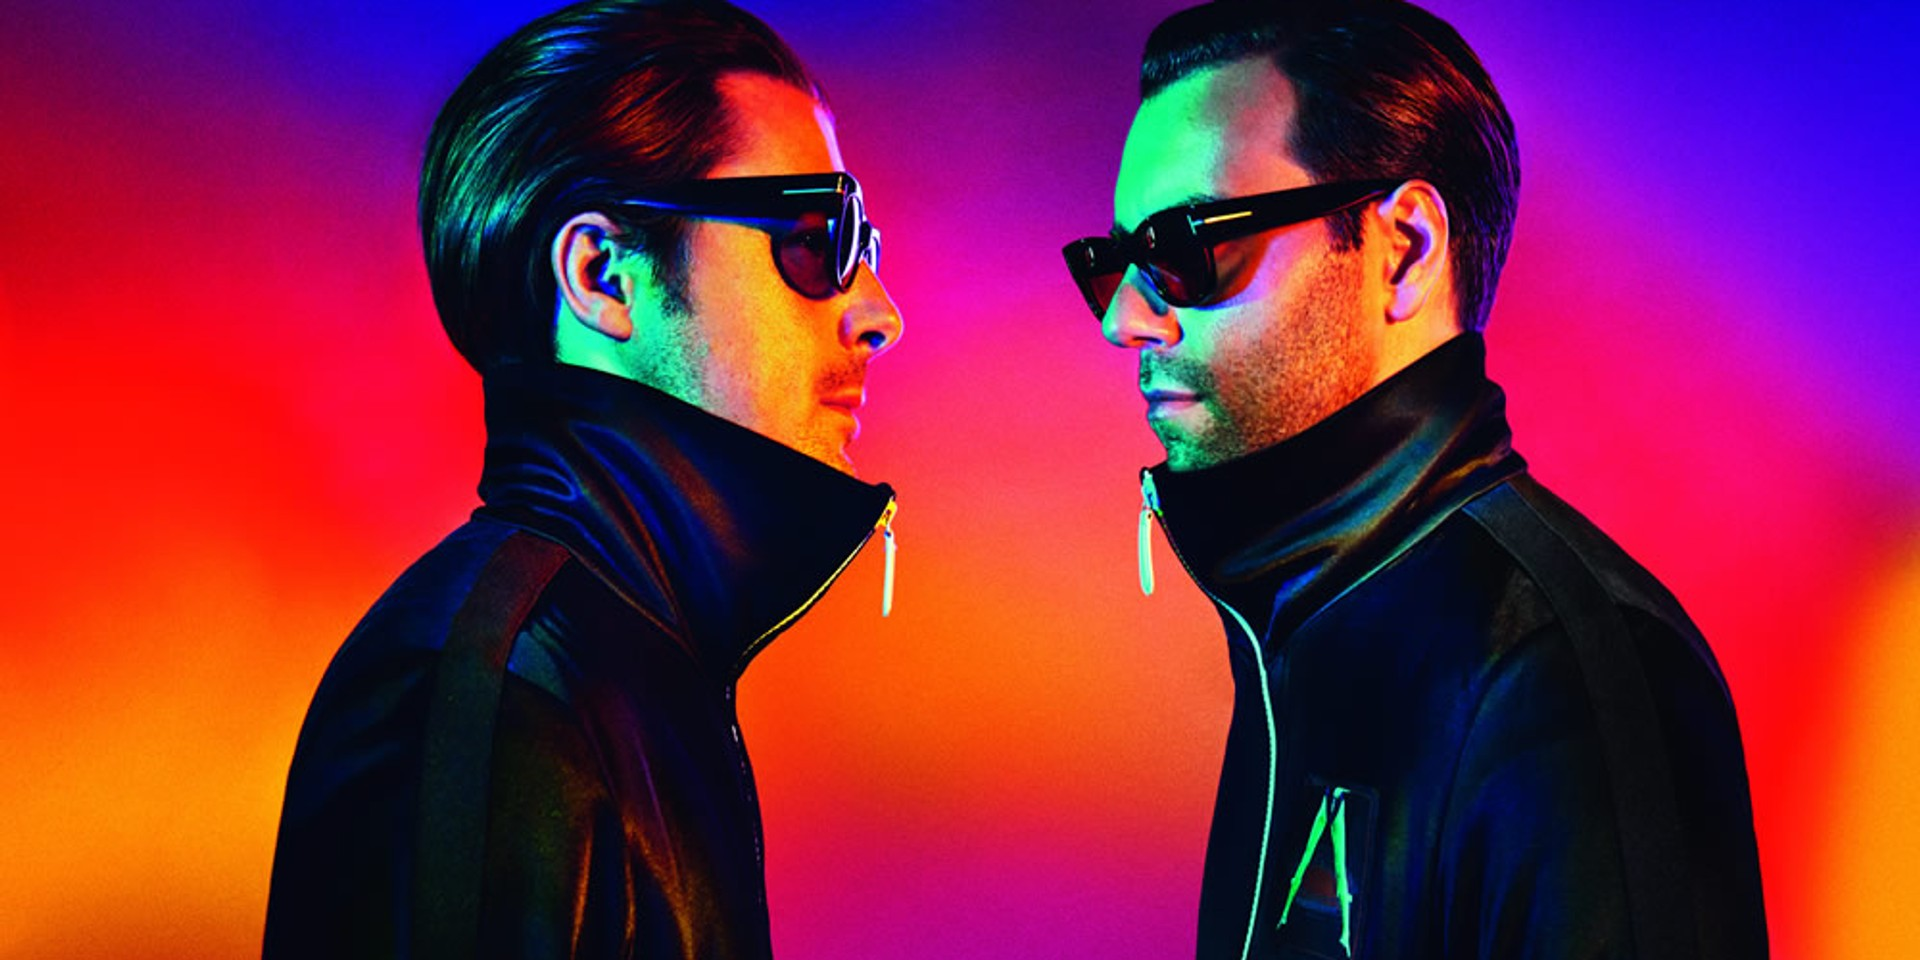 ZoukOut 2017 receives three new additions — Yellow Claw, Axwell Λ Ingrosso & R3hab